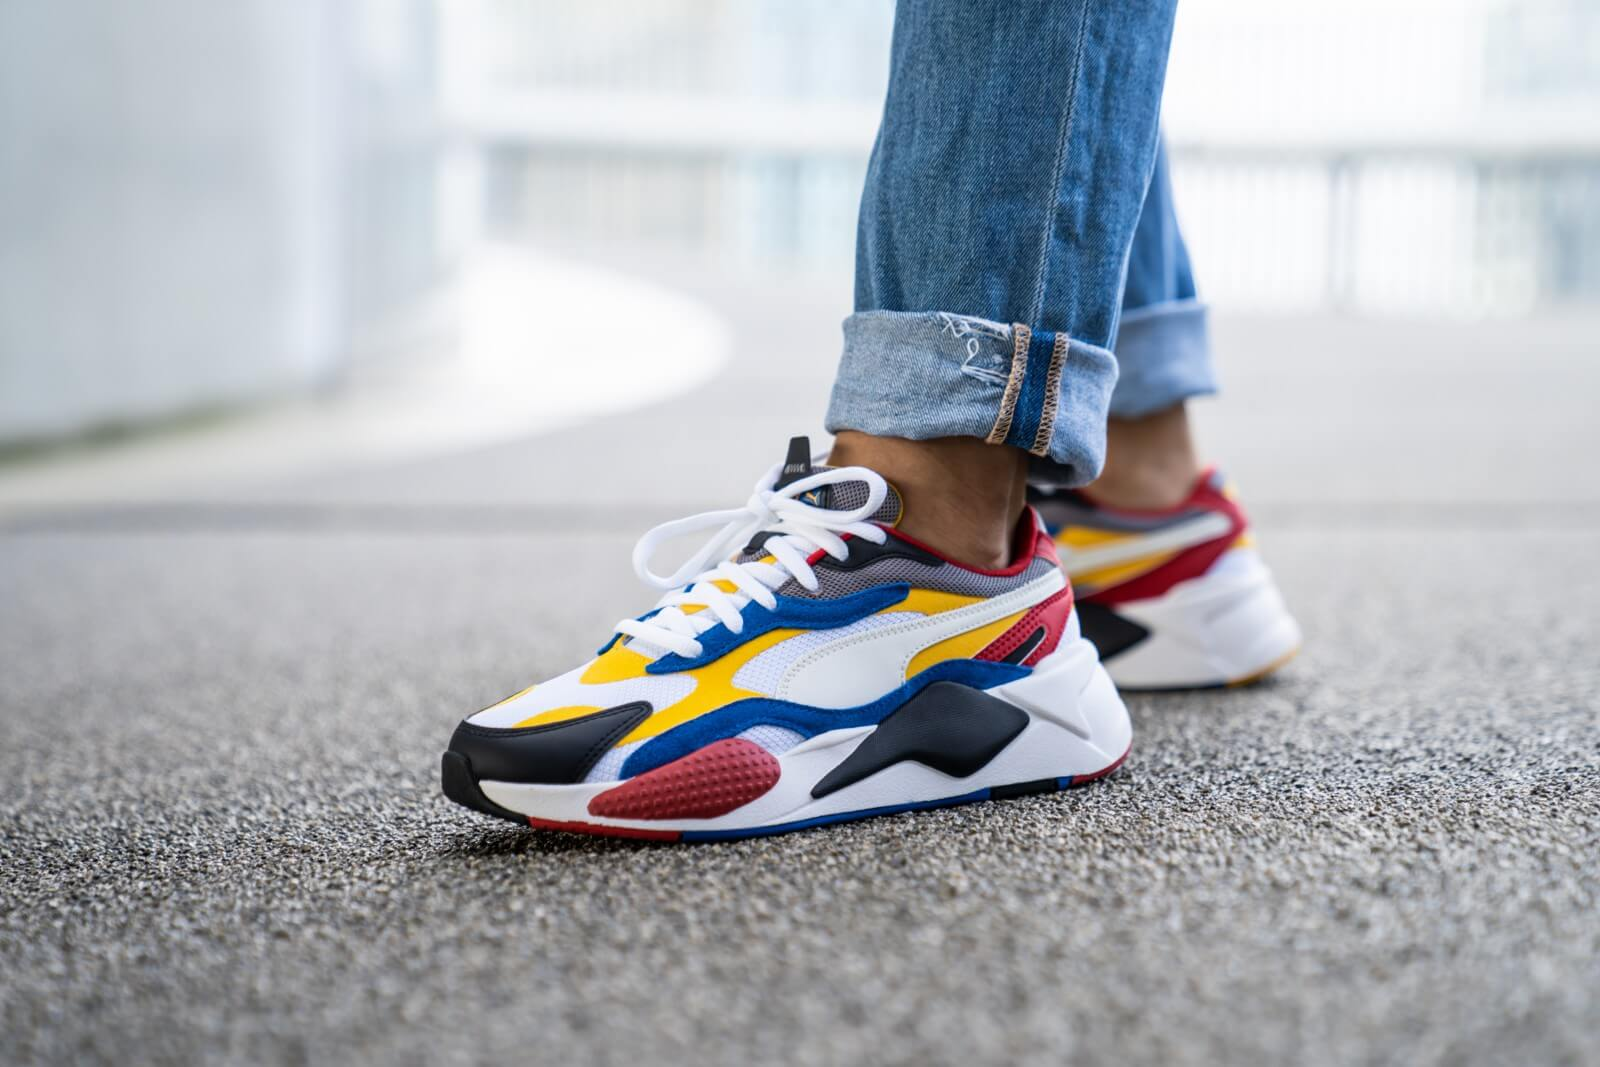 Puma RS-X3 Puzzle Puma White/Spectra Yellow - 371570-04